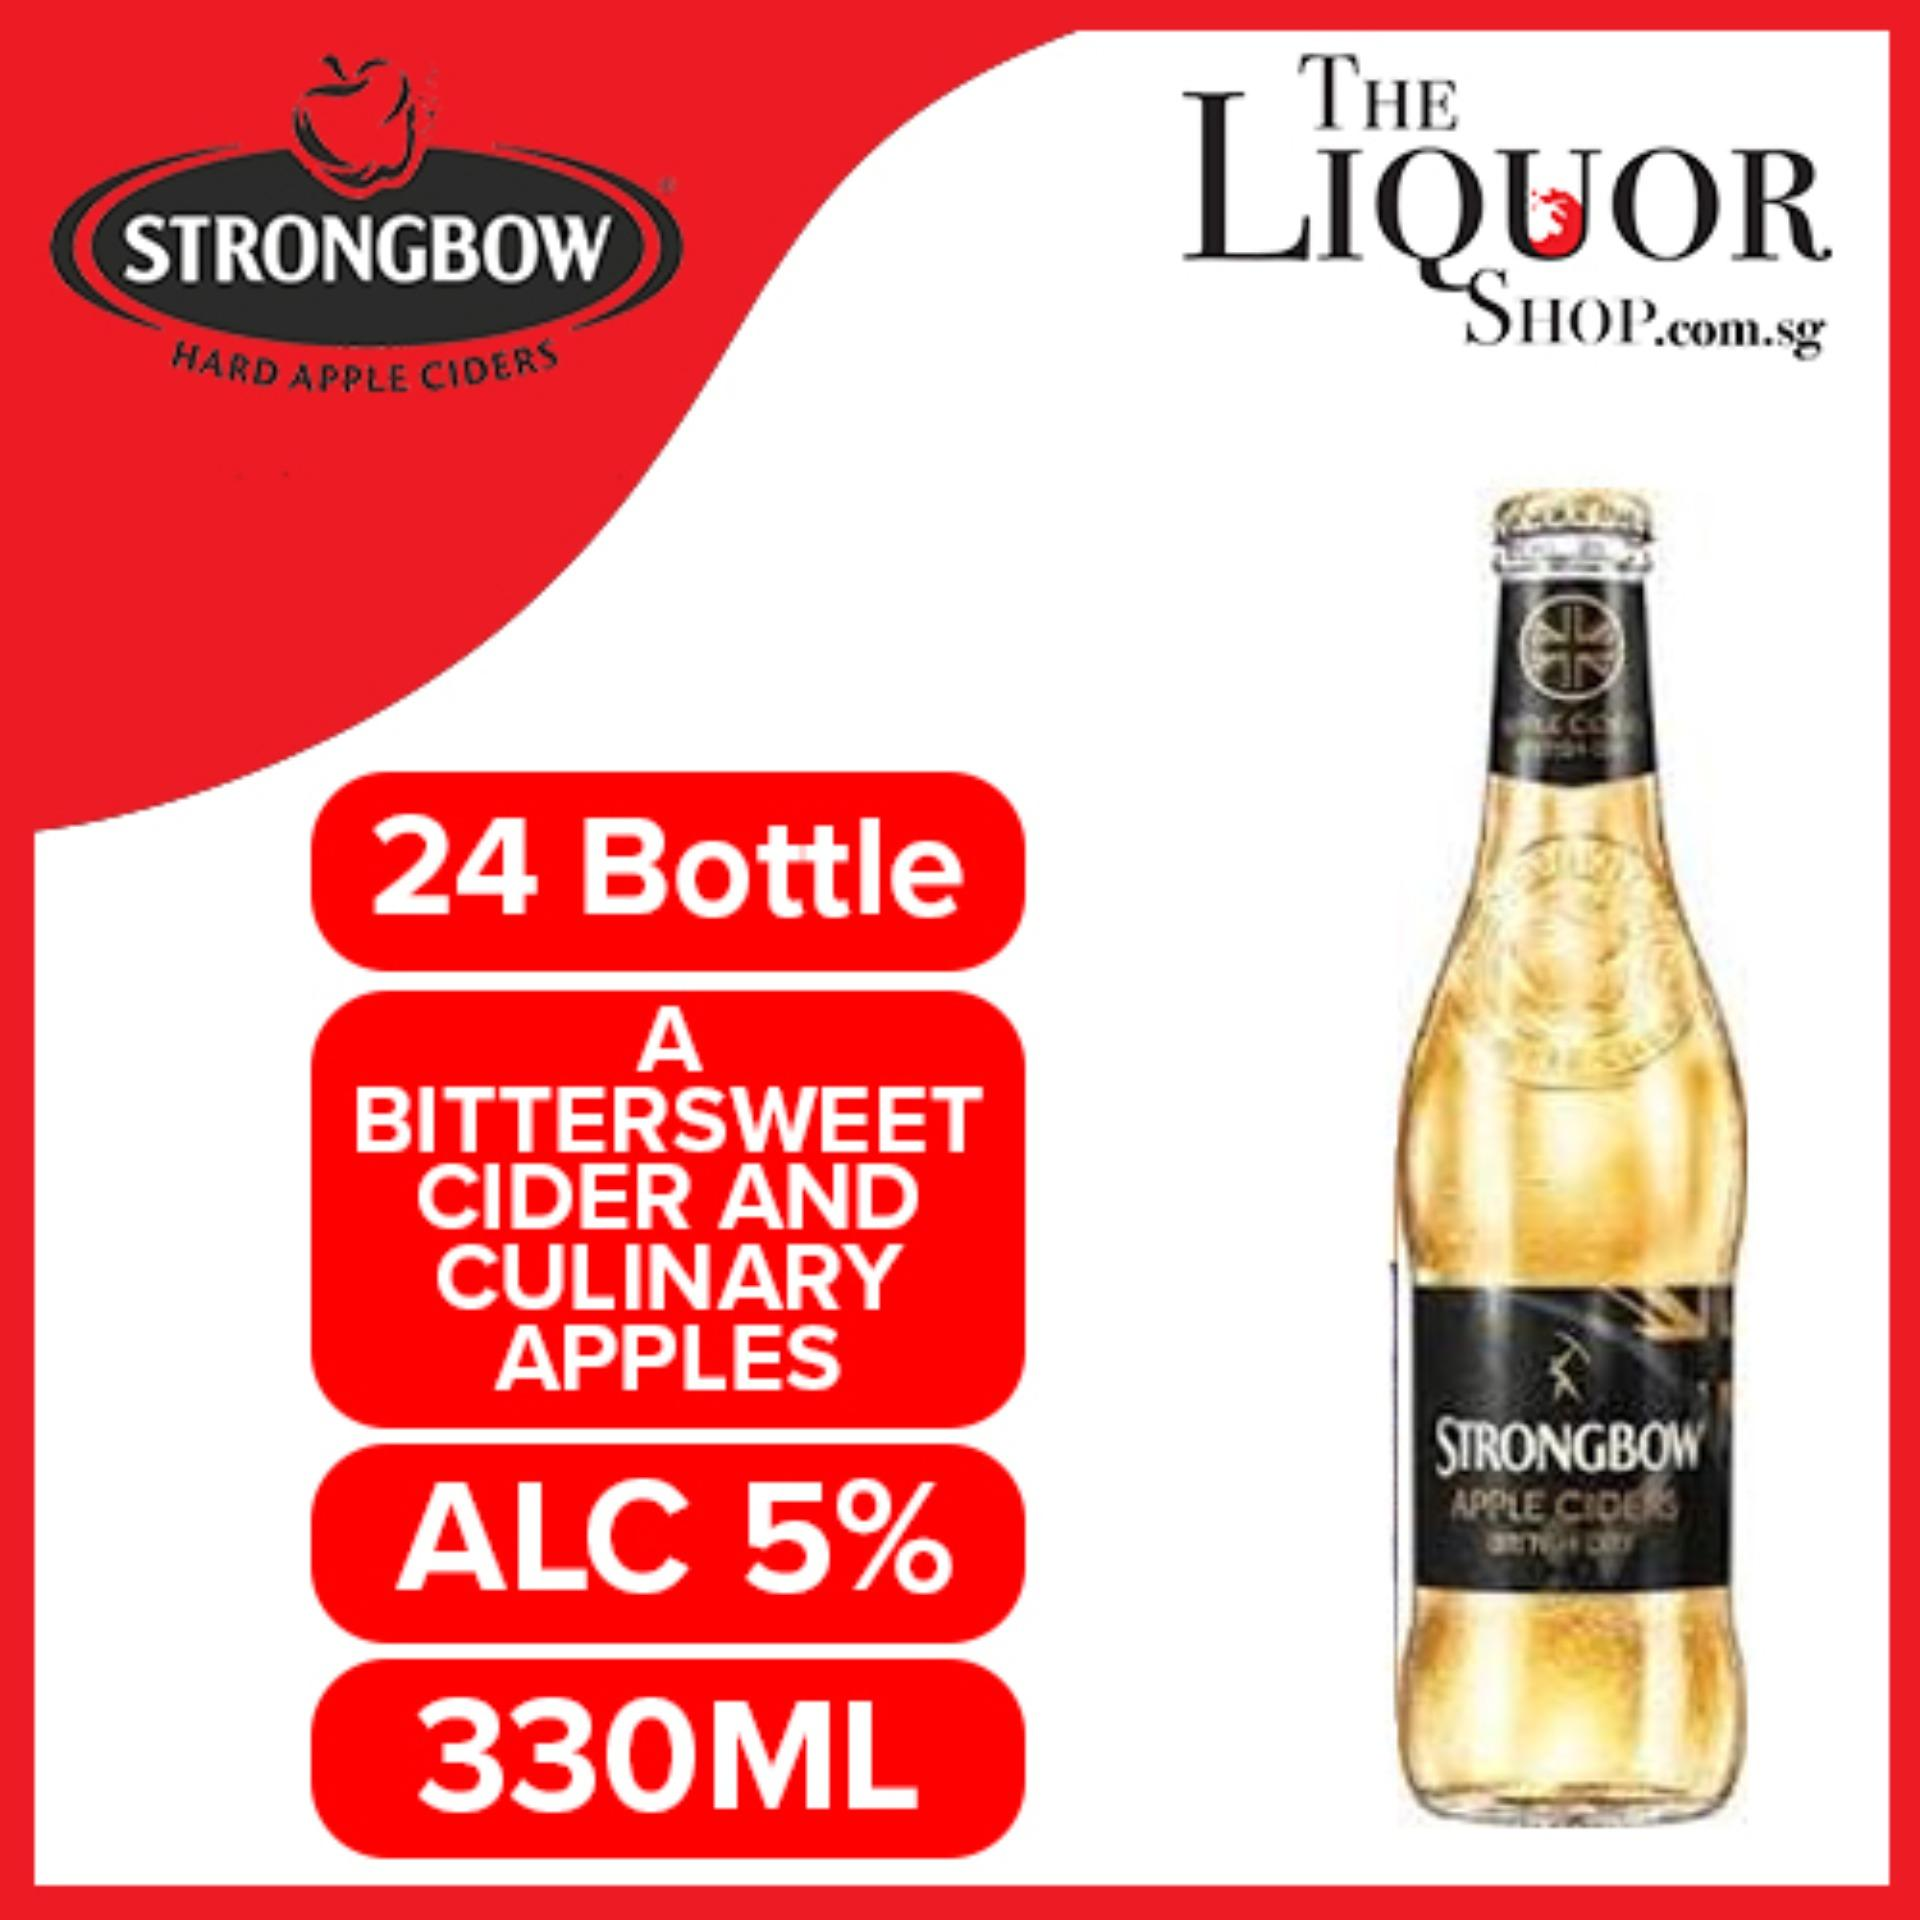 Strongbow Apple Cider British Dry 24x330ml By The Liquor Shop.